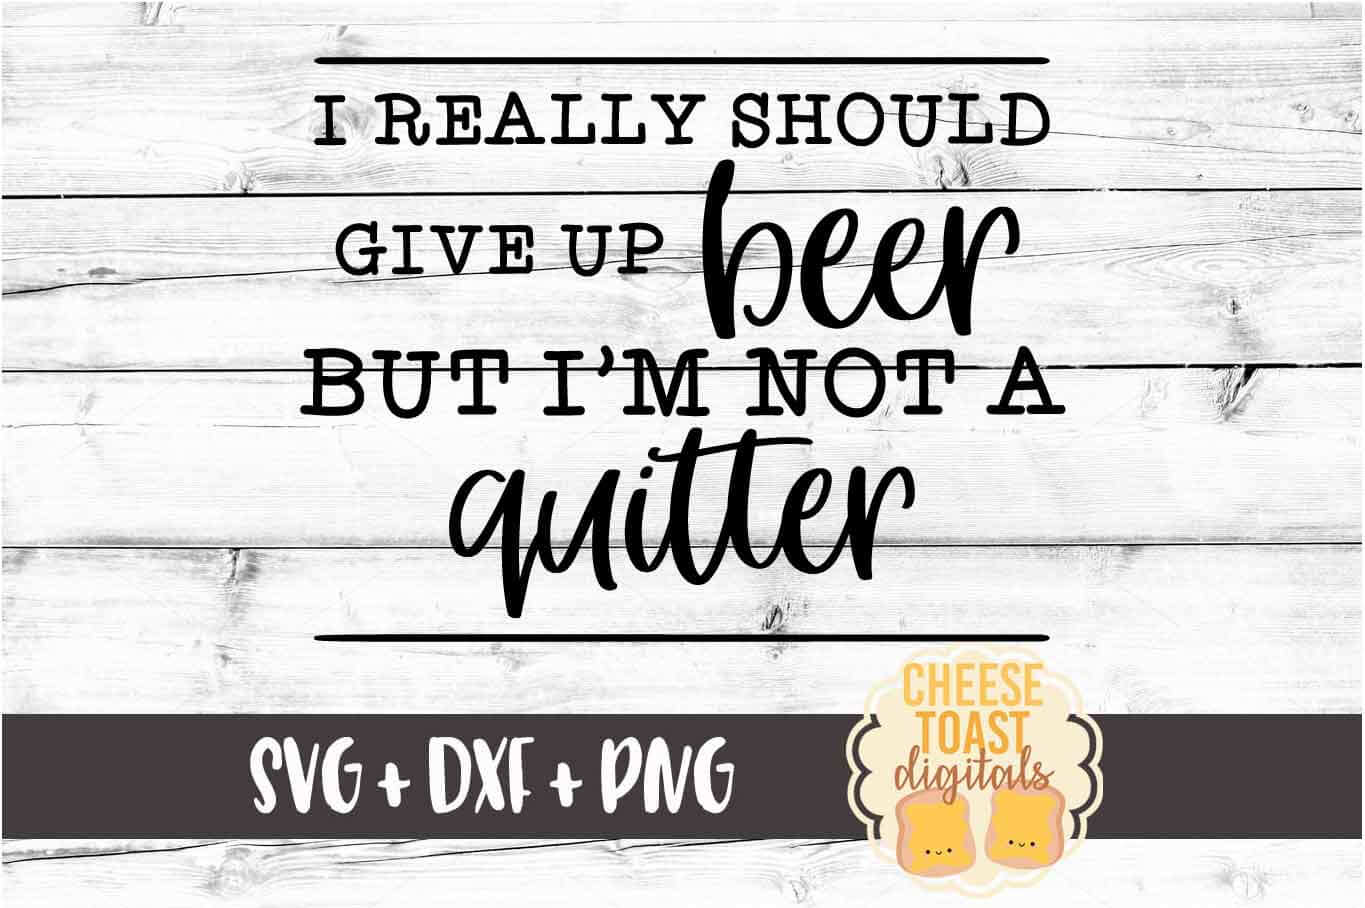 I Really Should Give Up Beer But I'm Not A Quitter SVG File example image 2